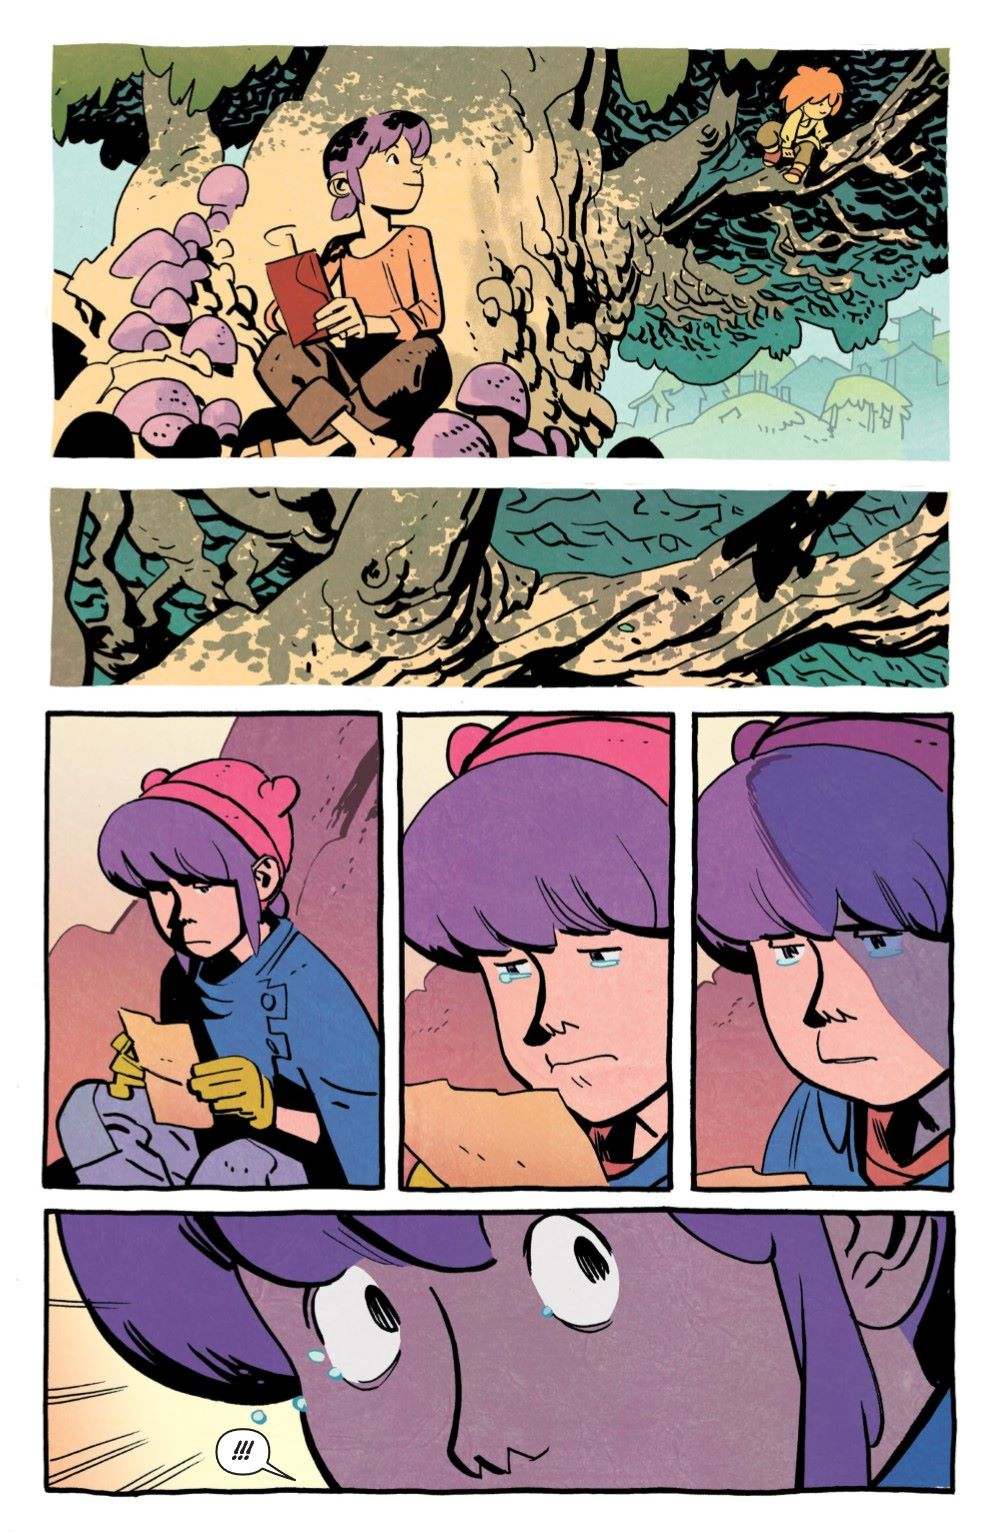 JONNA-2-MARKETING-06 ComicList Previews: JONNA AND THE UNPOSSIBLE MONSTERS #2